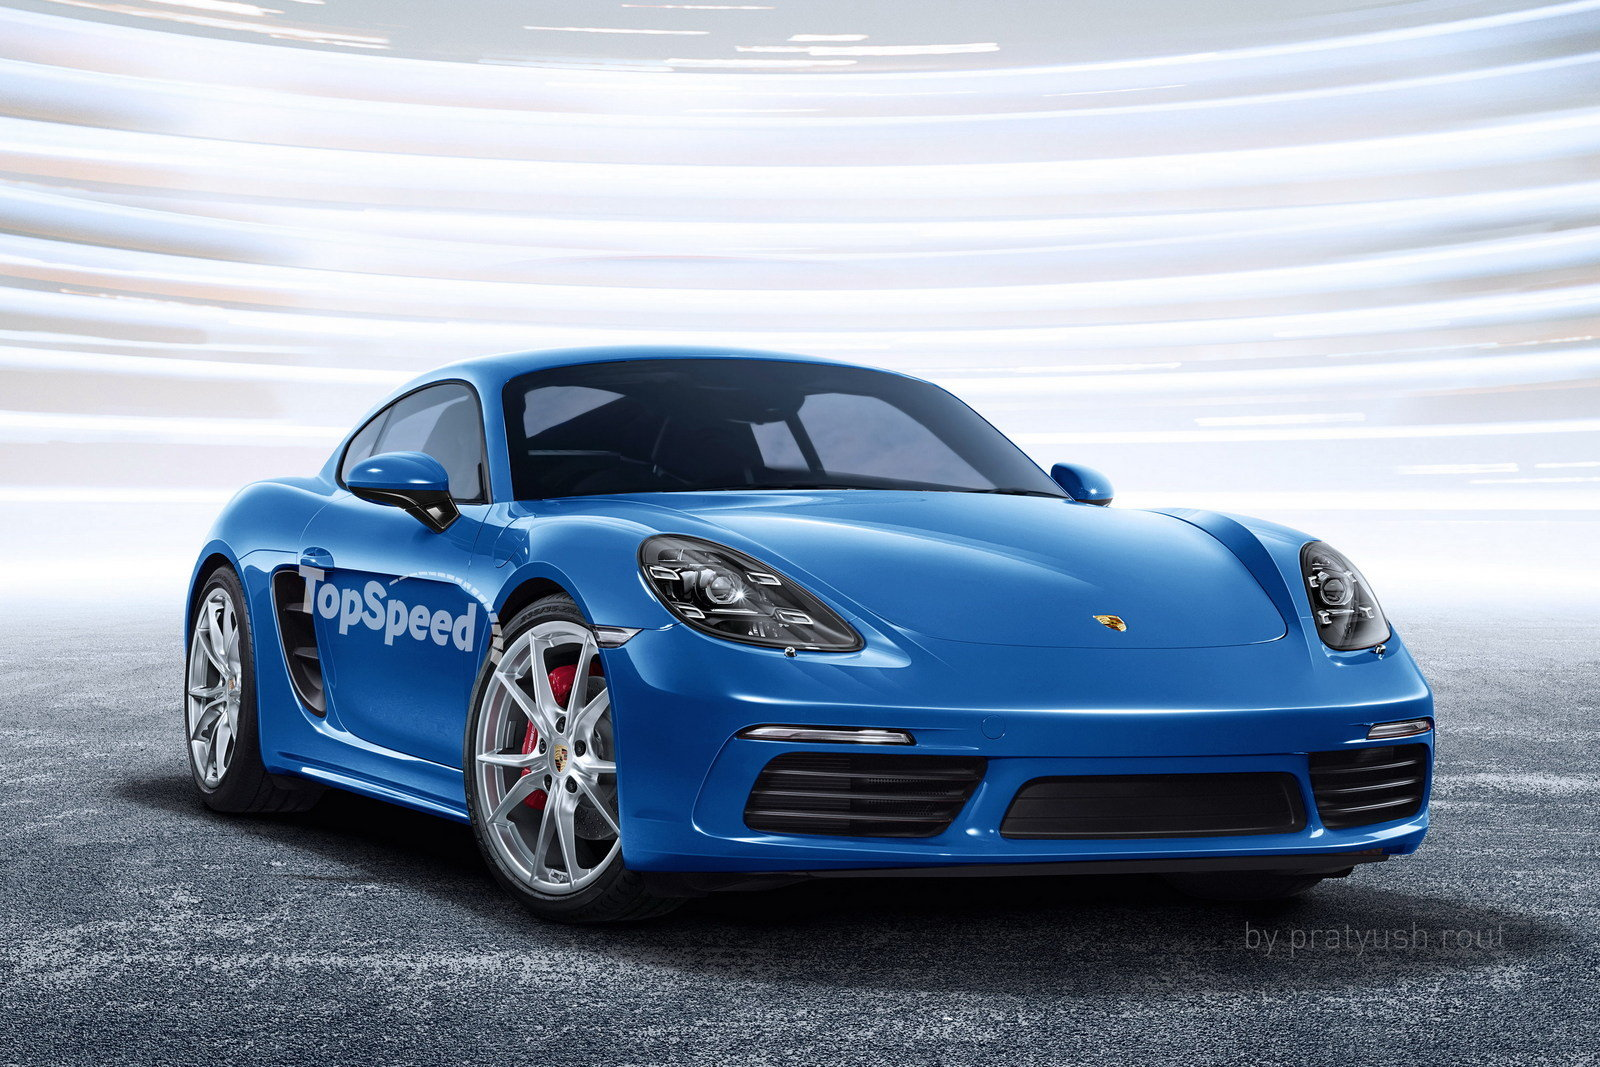 2017 porsche 718 cayman picture 663720 car review top speed. Black Bedroom Furniture Sets. Home Design Ideas